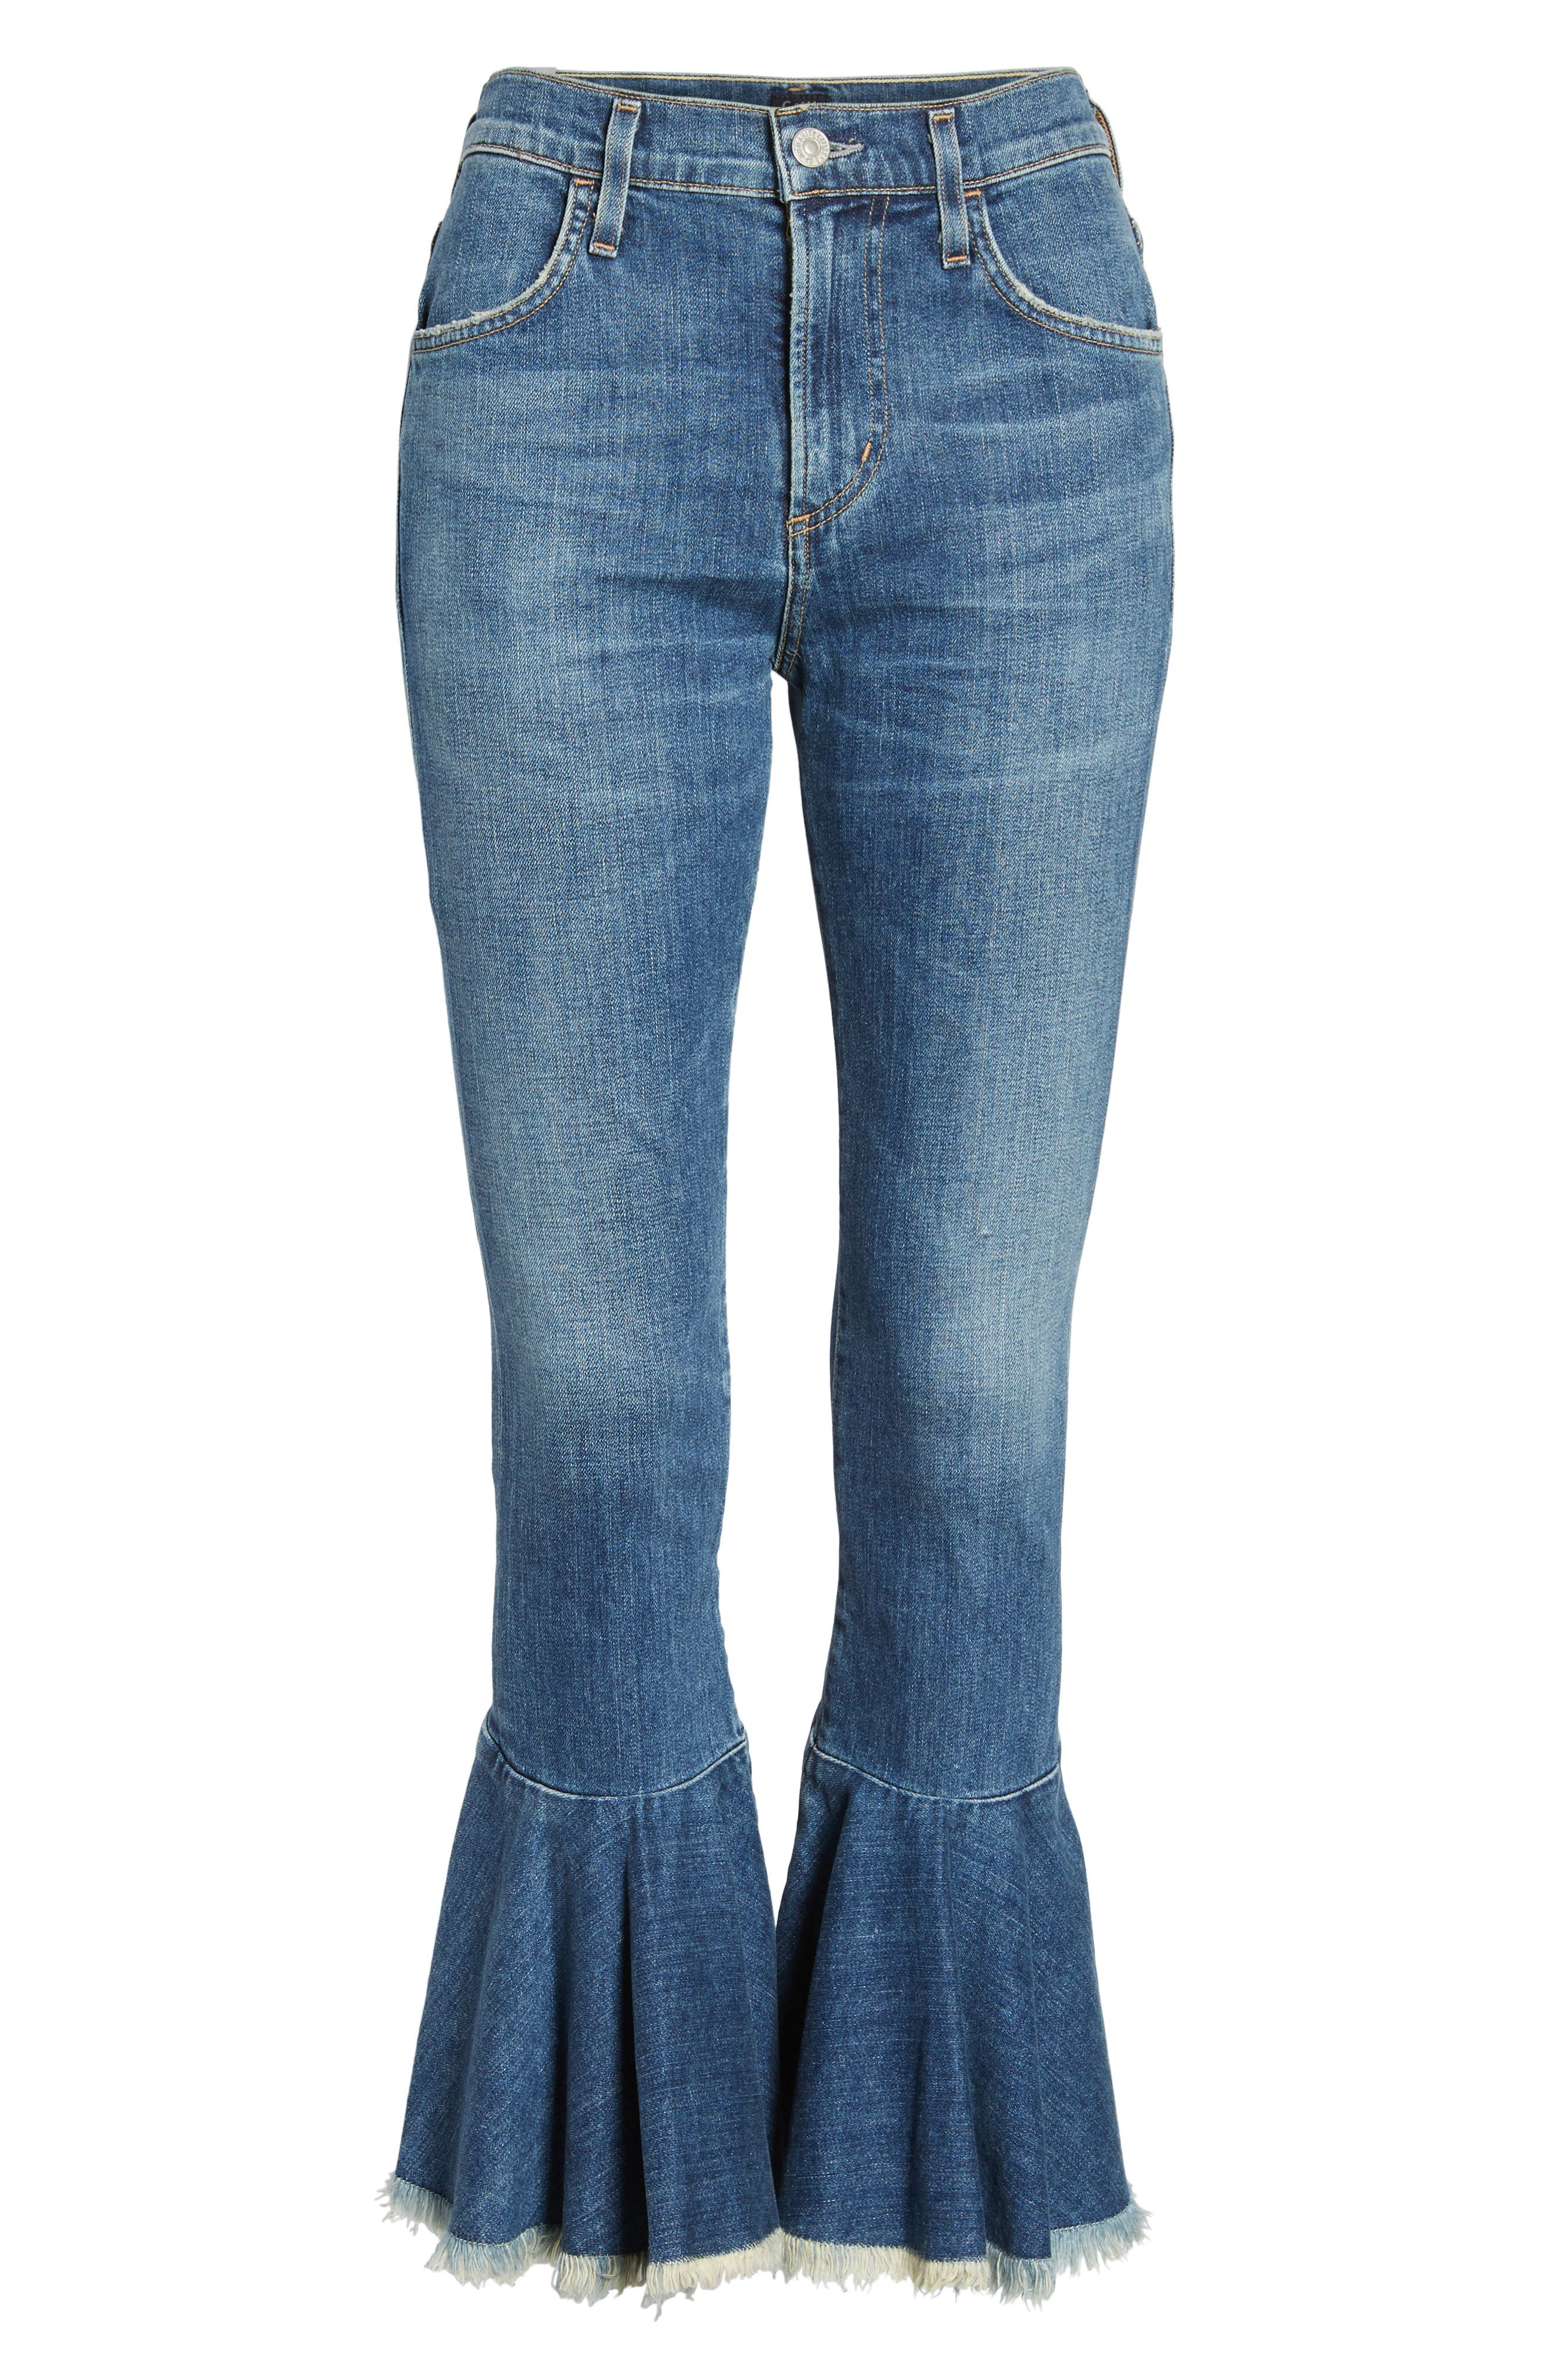 Drew Flounce Hem Crop Jeans,                             Alternate thumbnail 7, color,                             422